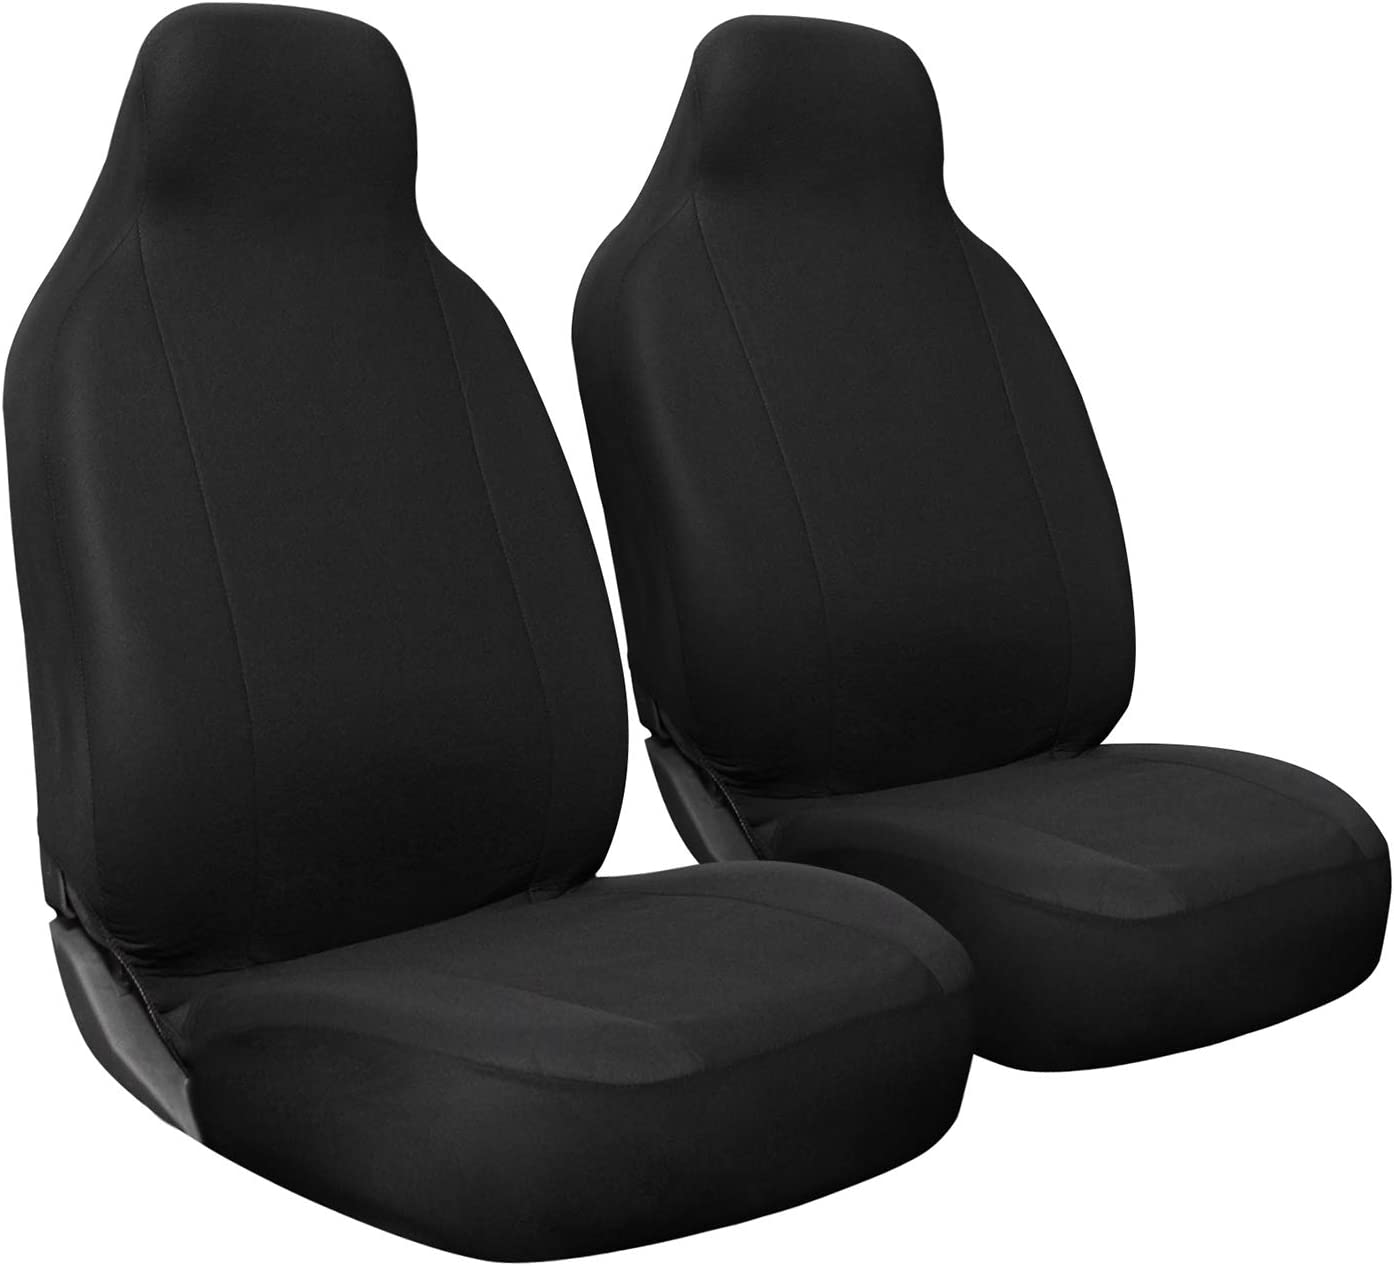 OxGord Car Seat Cover - Poly Cloth Solid Black with Front Low Bucket Seat - Universal Fit for Cars, Trucks, SUVs, Vans - 2 pc Set